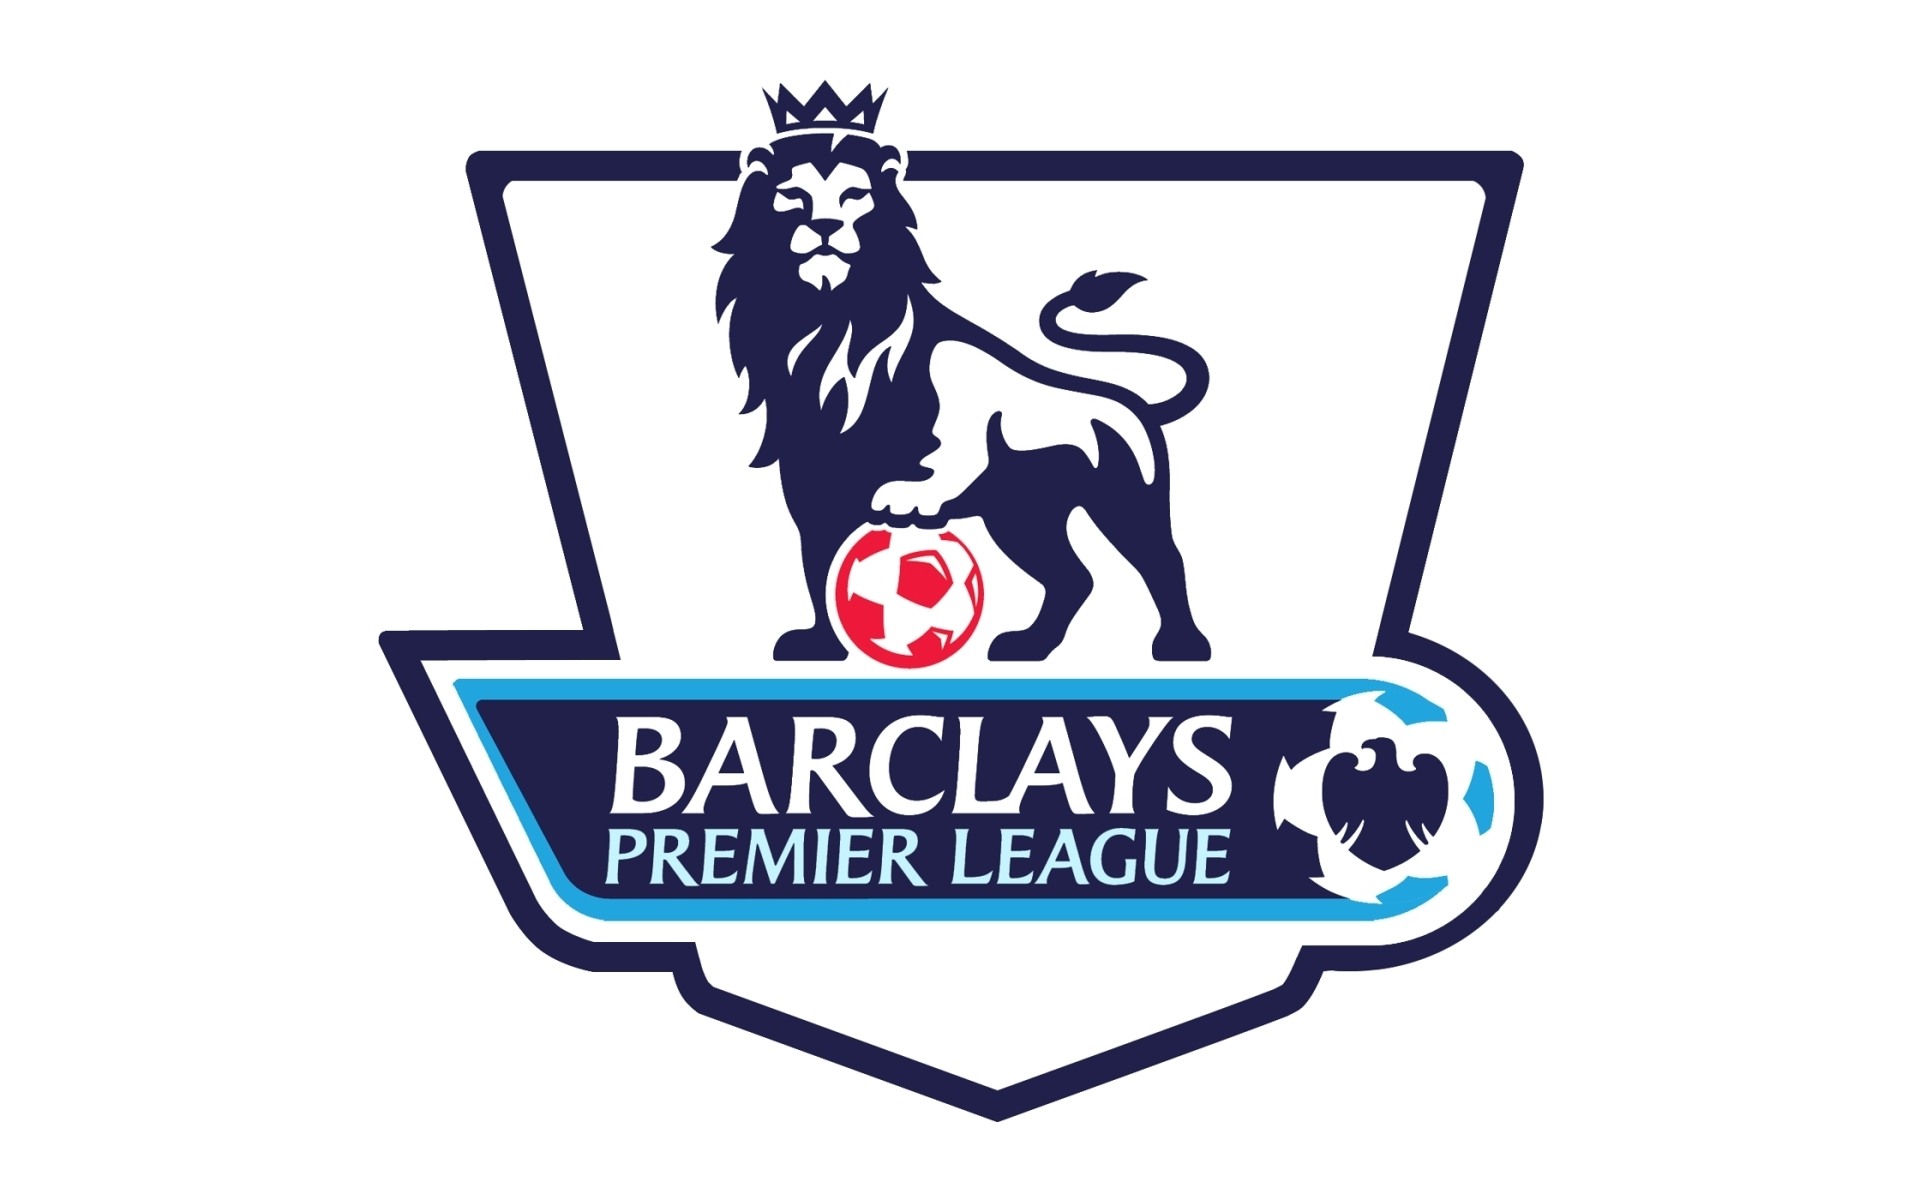 Barclays-Premier-League-Logo-Wallpaper